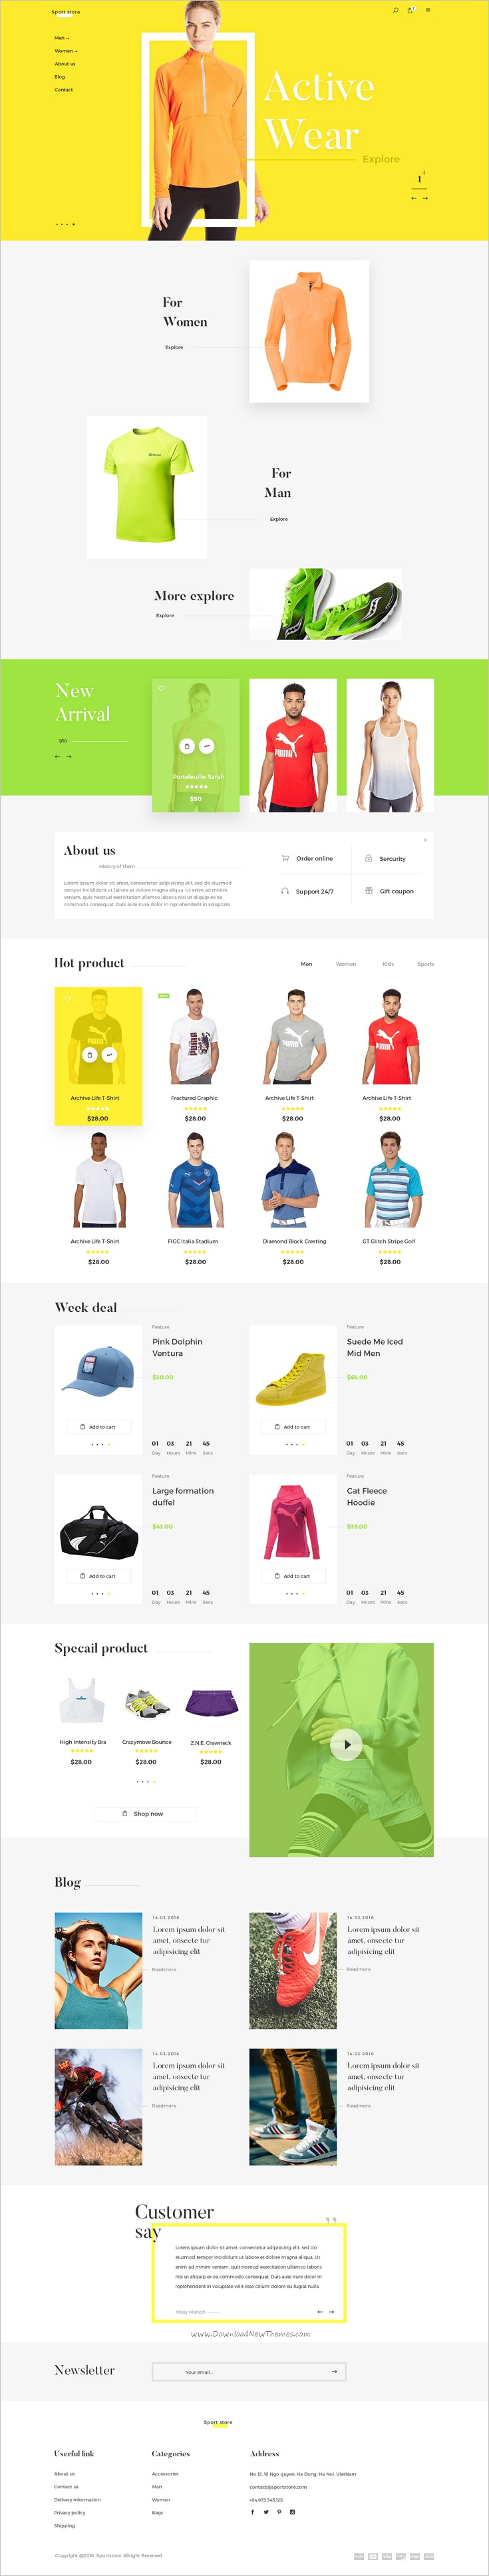 Sportstore is a clean and modern design premium #Photoshop template for stunning #sports #shop eCommerce websites download now➩ https://themeforest.net/item/sport-store-premium-ecommcerce-psd-templates/18945924?ref=Datasata